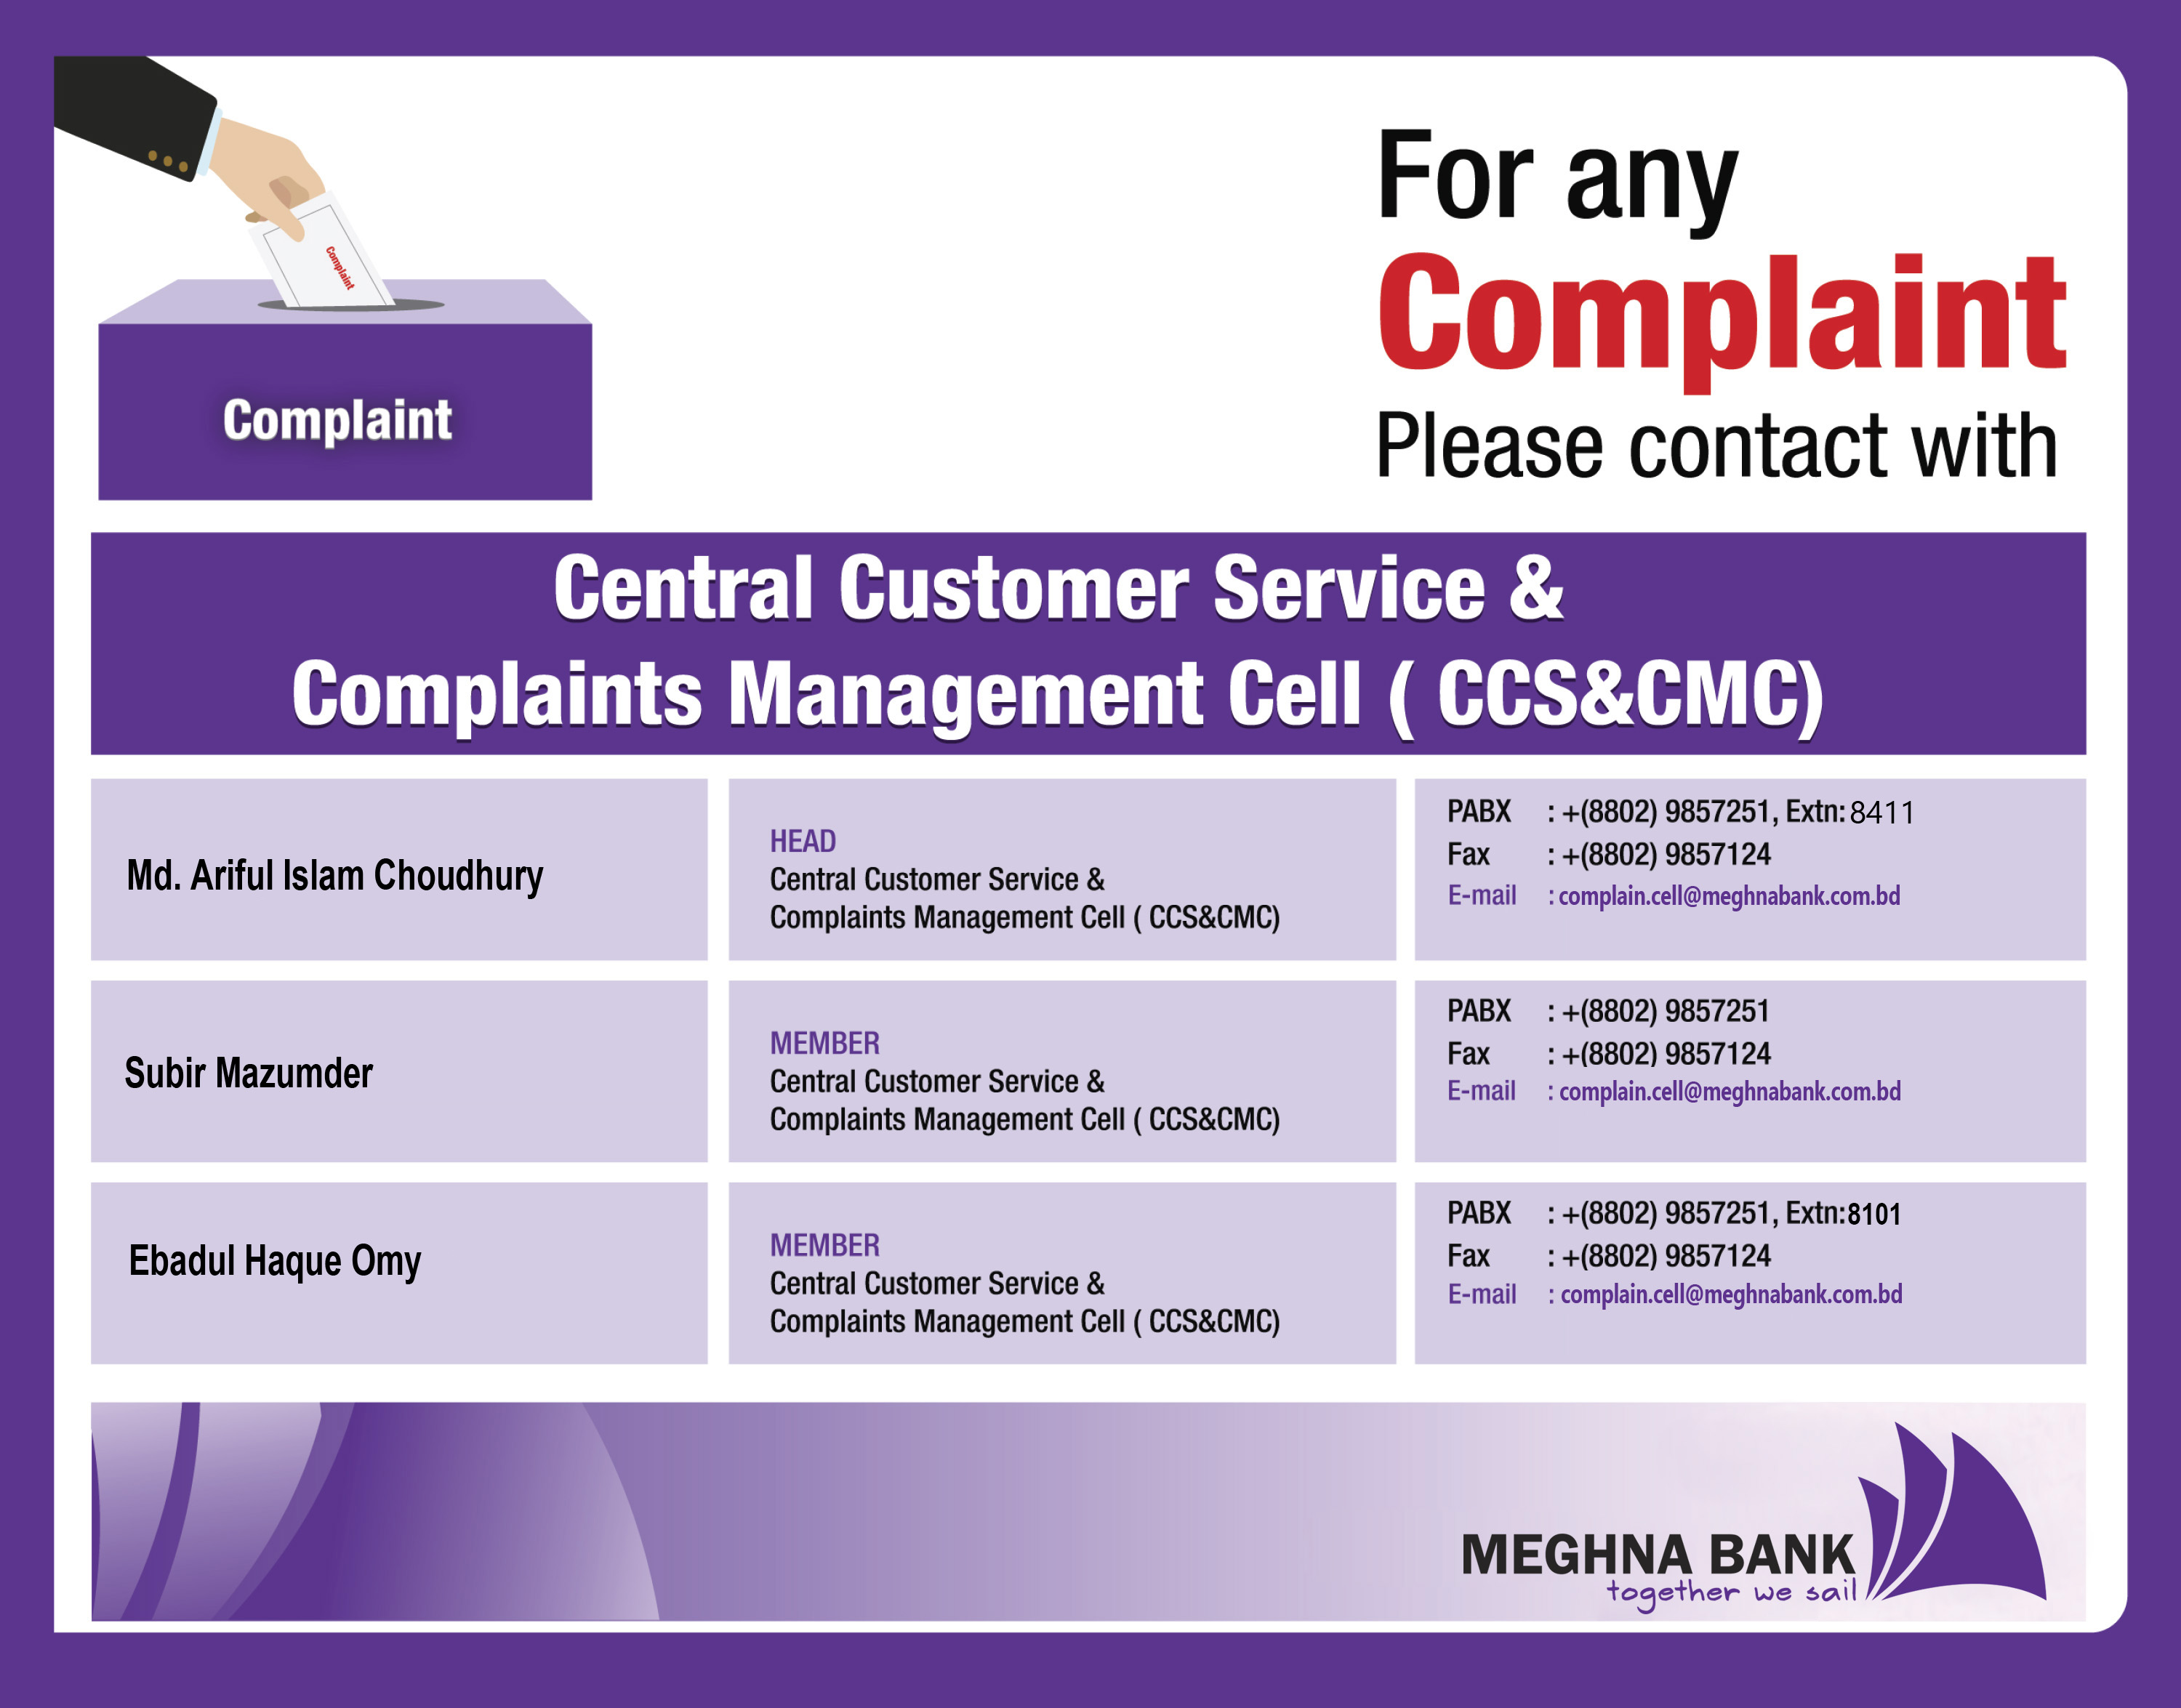 Central Customer Service & Complaints Management Cell